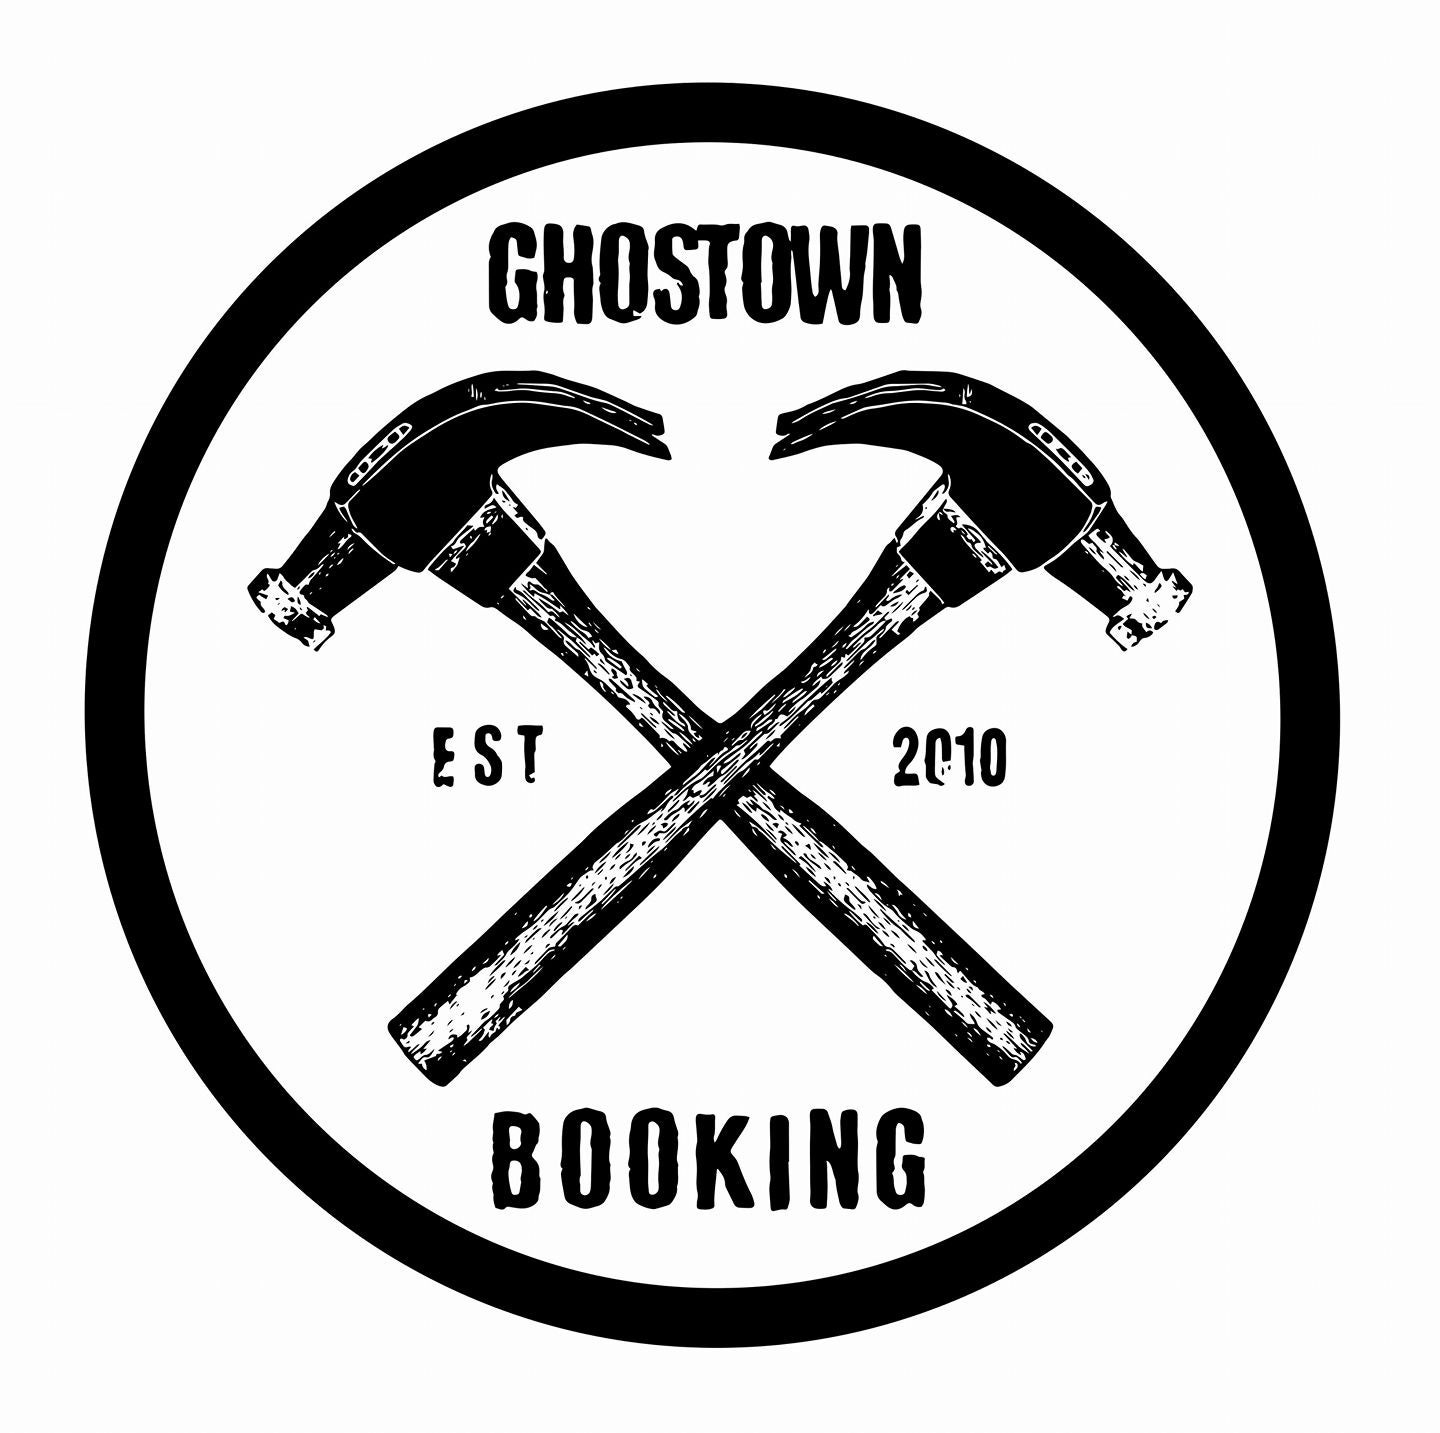 Ghostown Booking